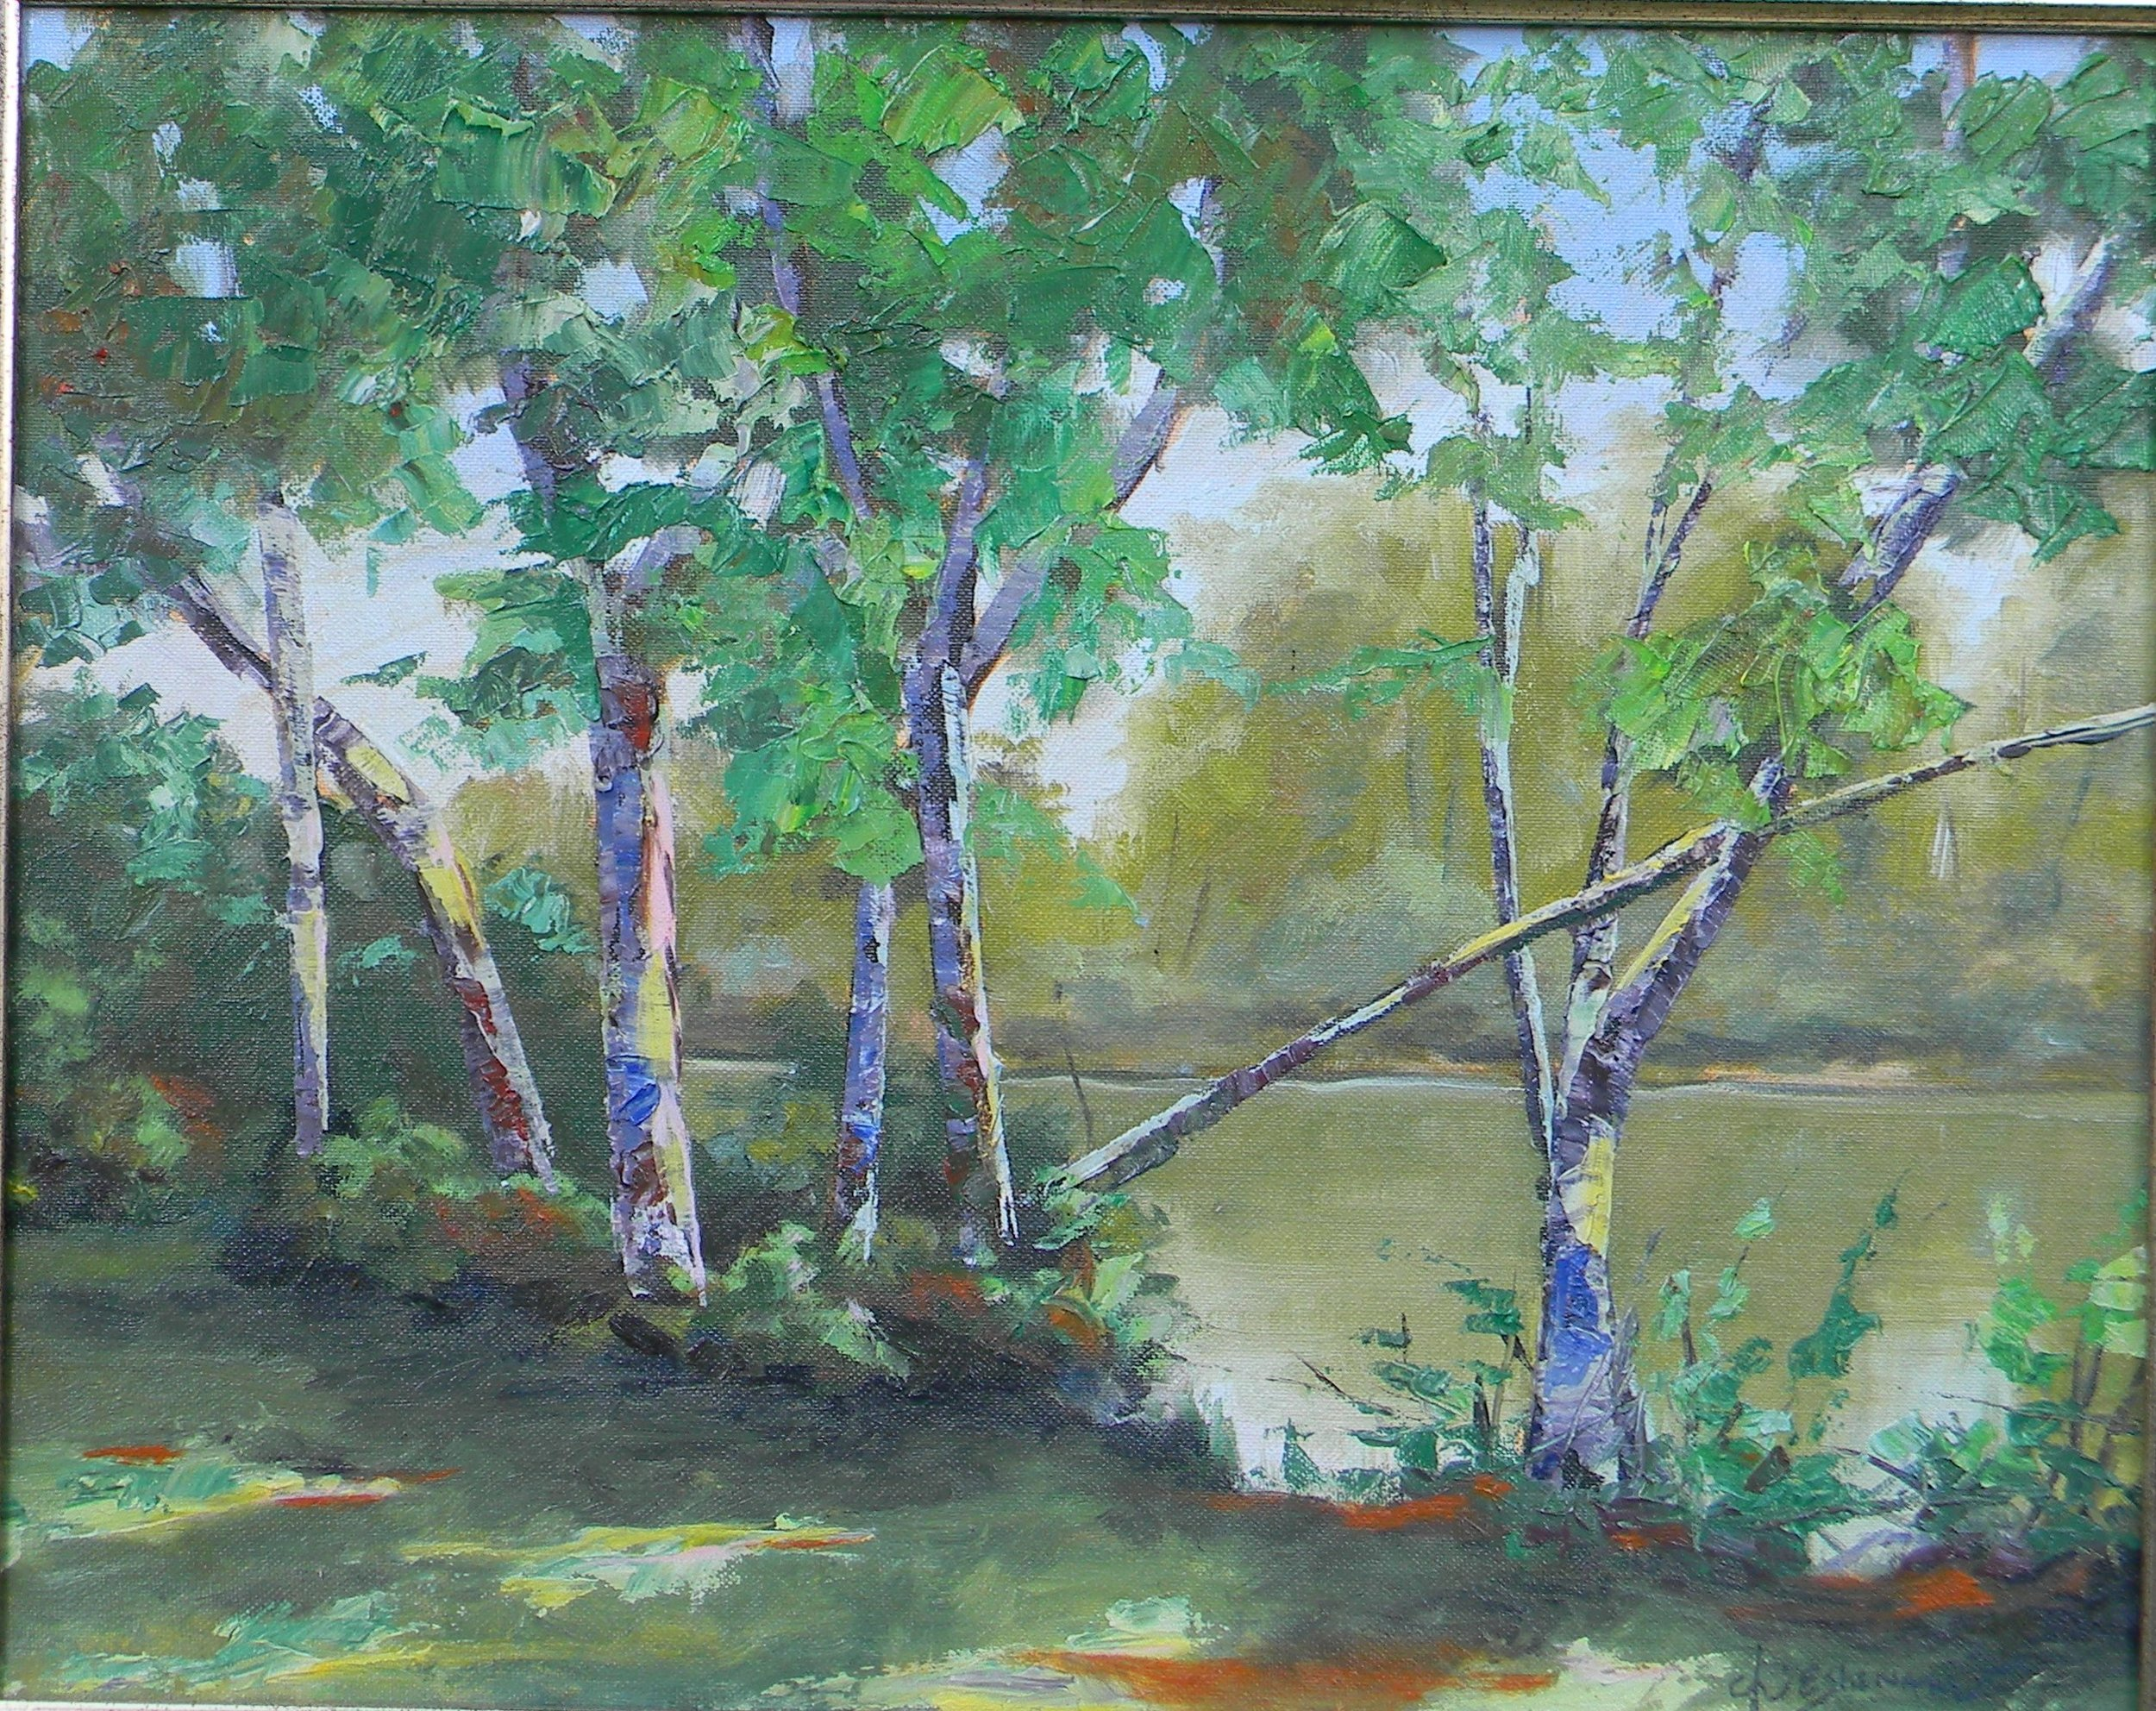 Trees of the Boise river 18x24 oil on canvas $995.00